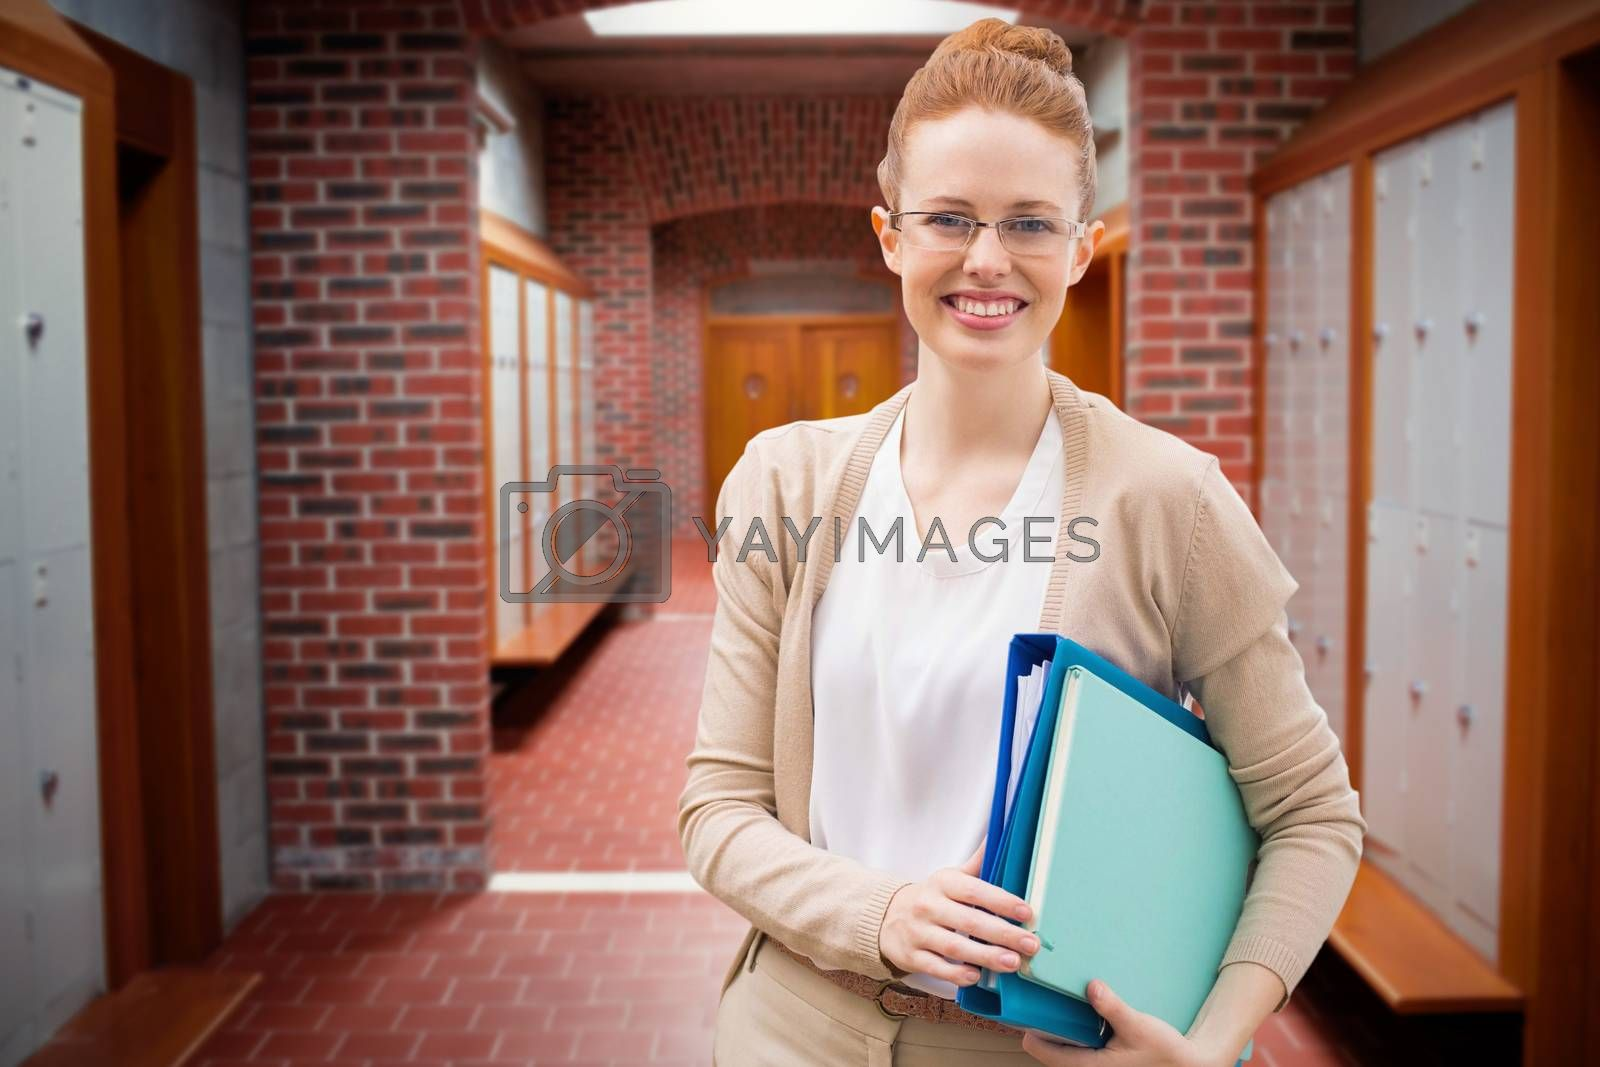 Composite image of teacher with books by Wavebreakmedia